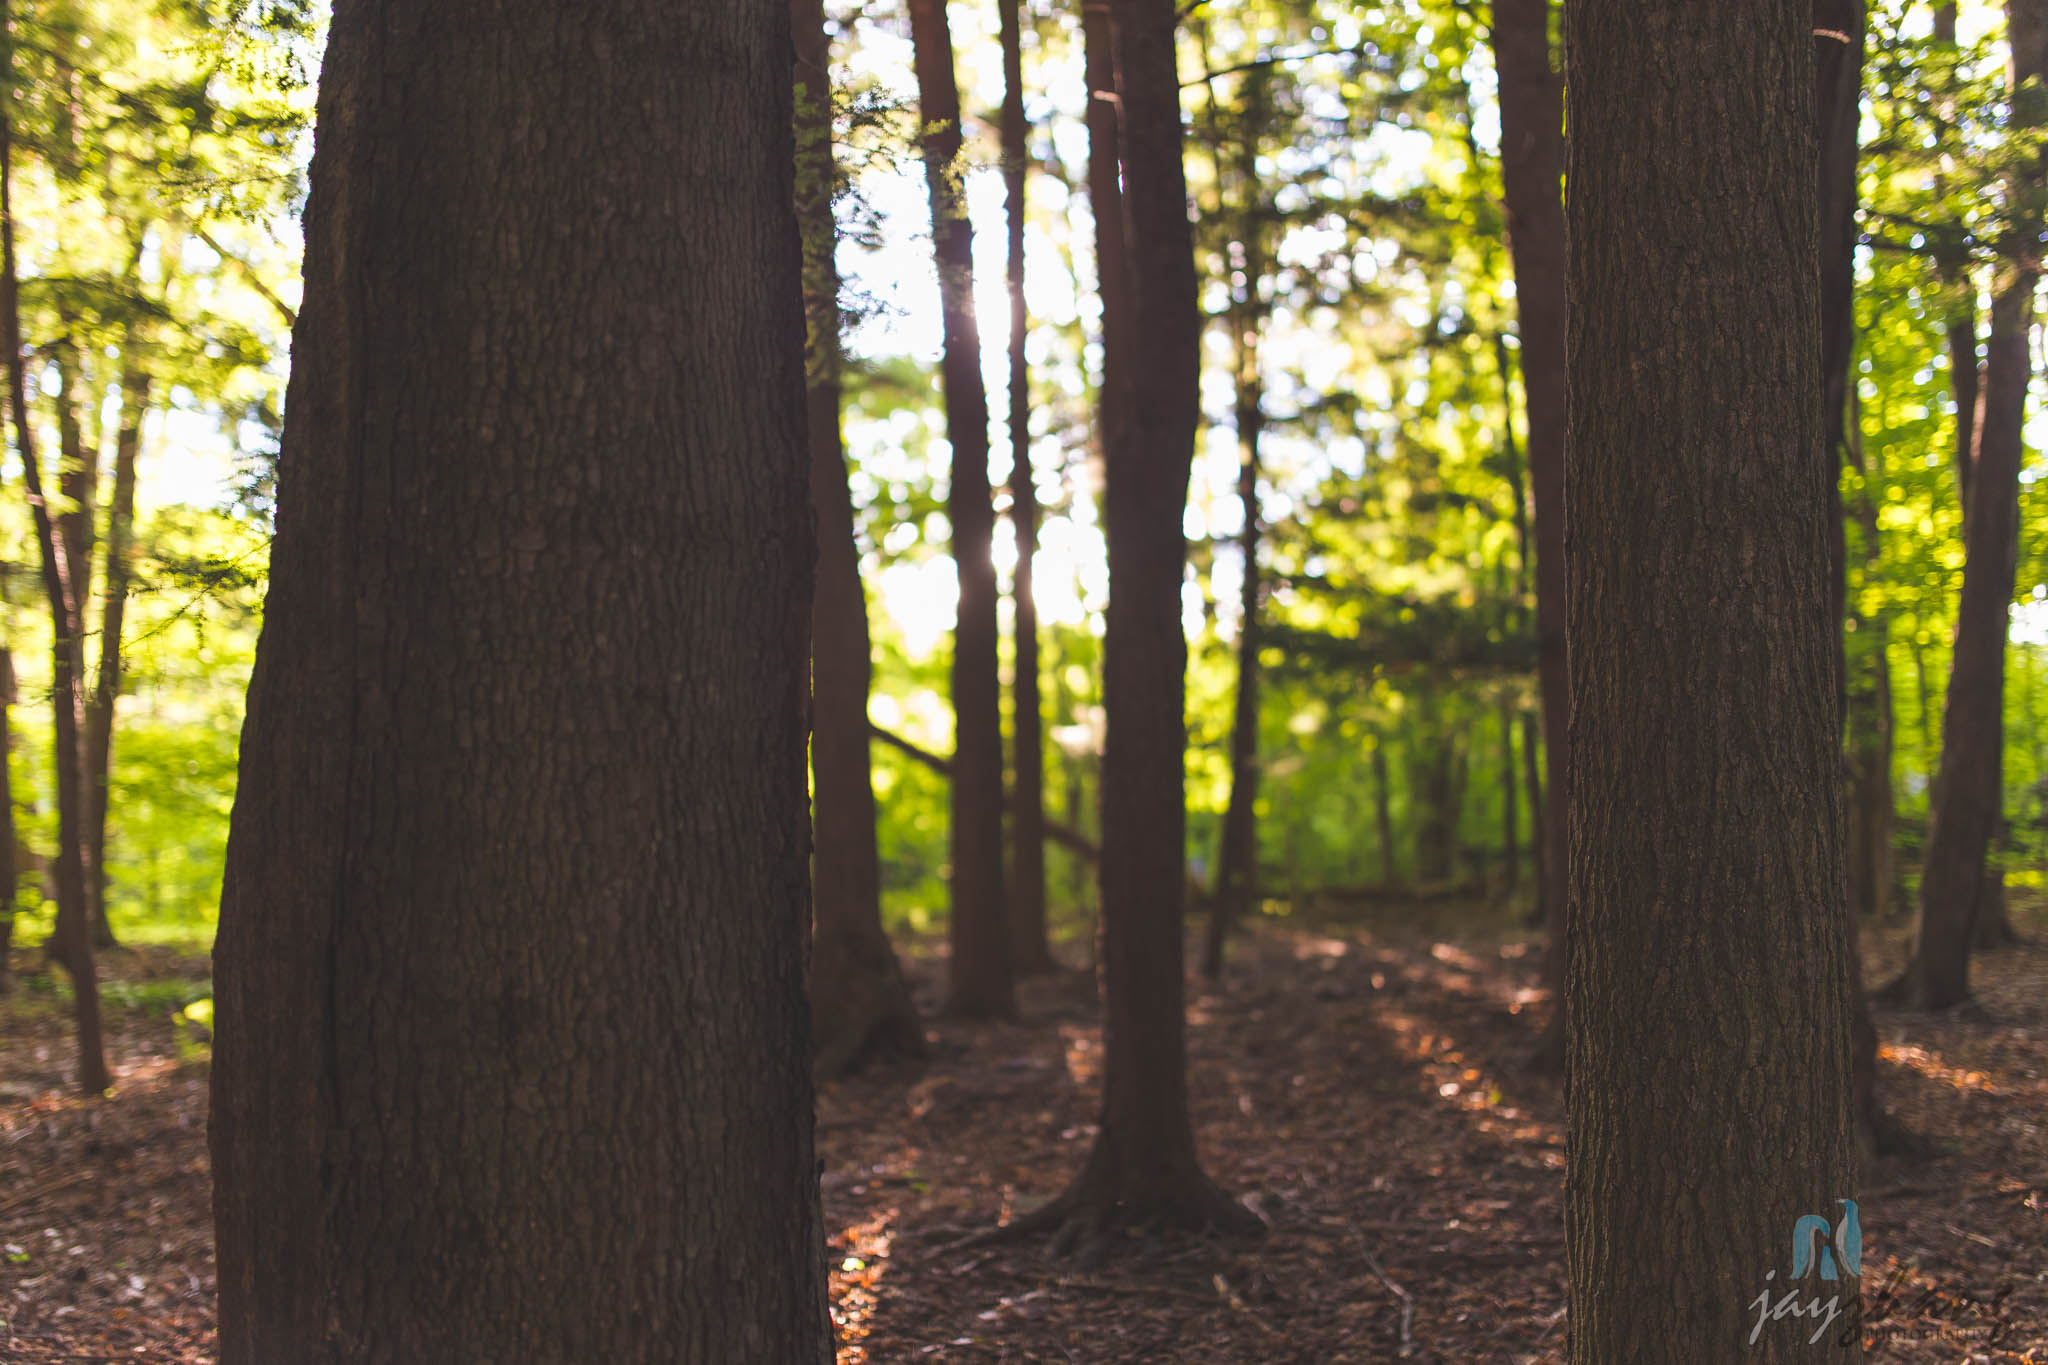 Day 241 - Light through the Forest